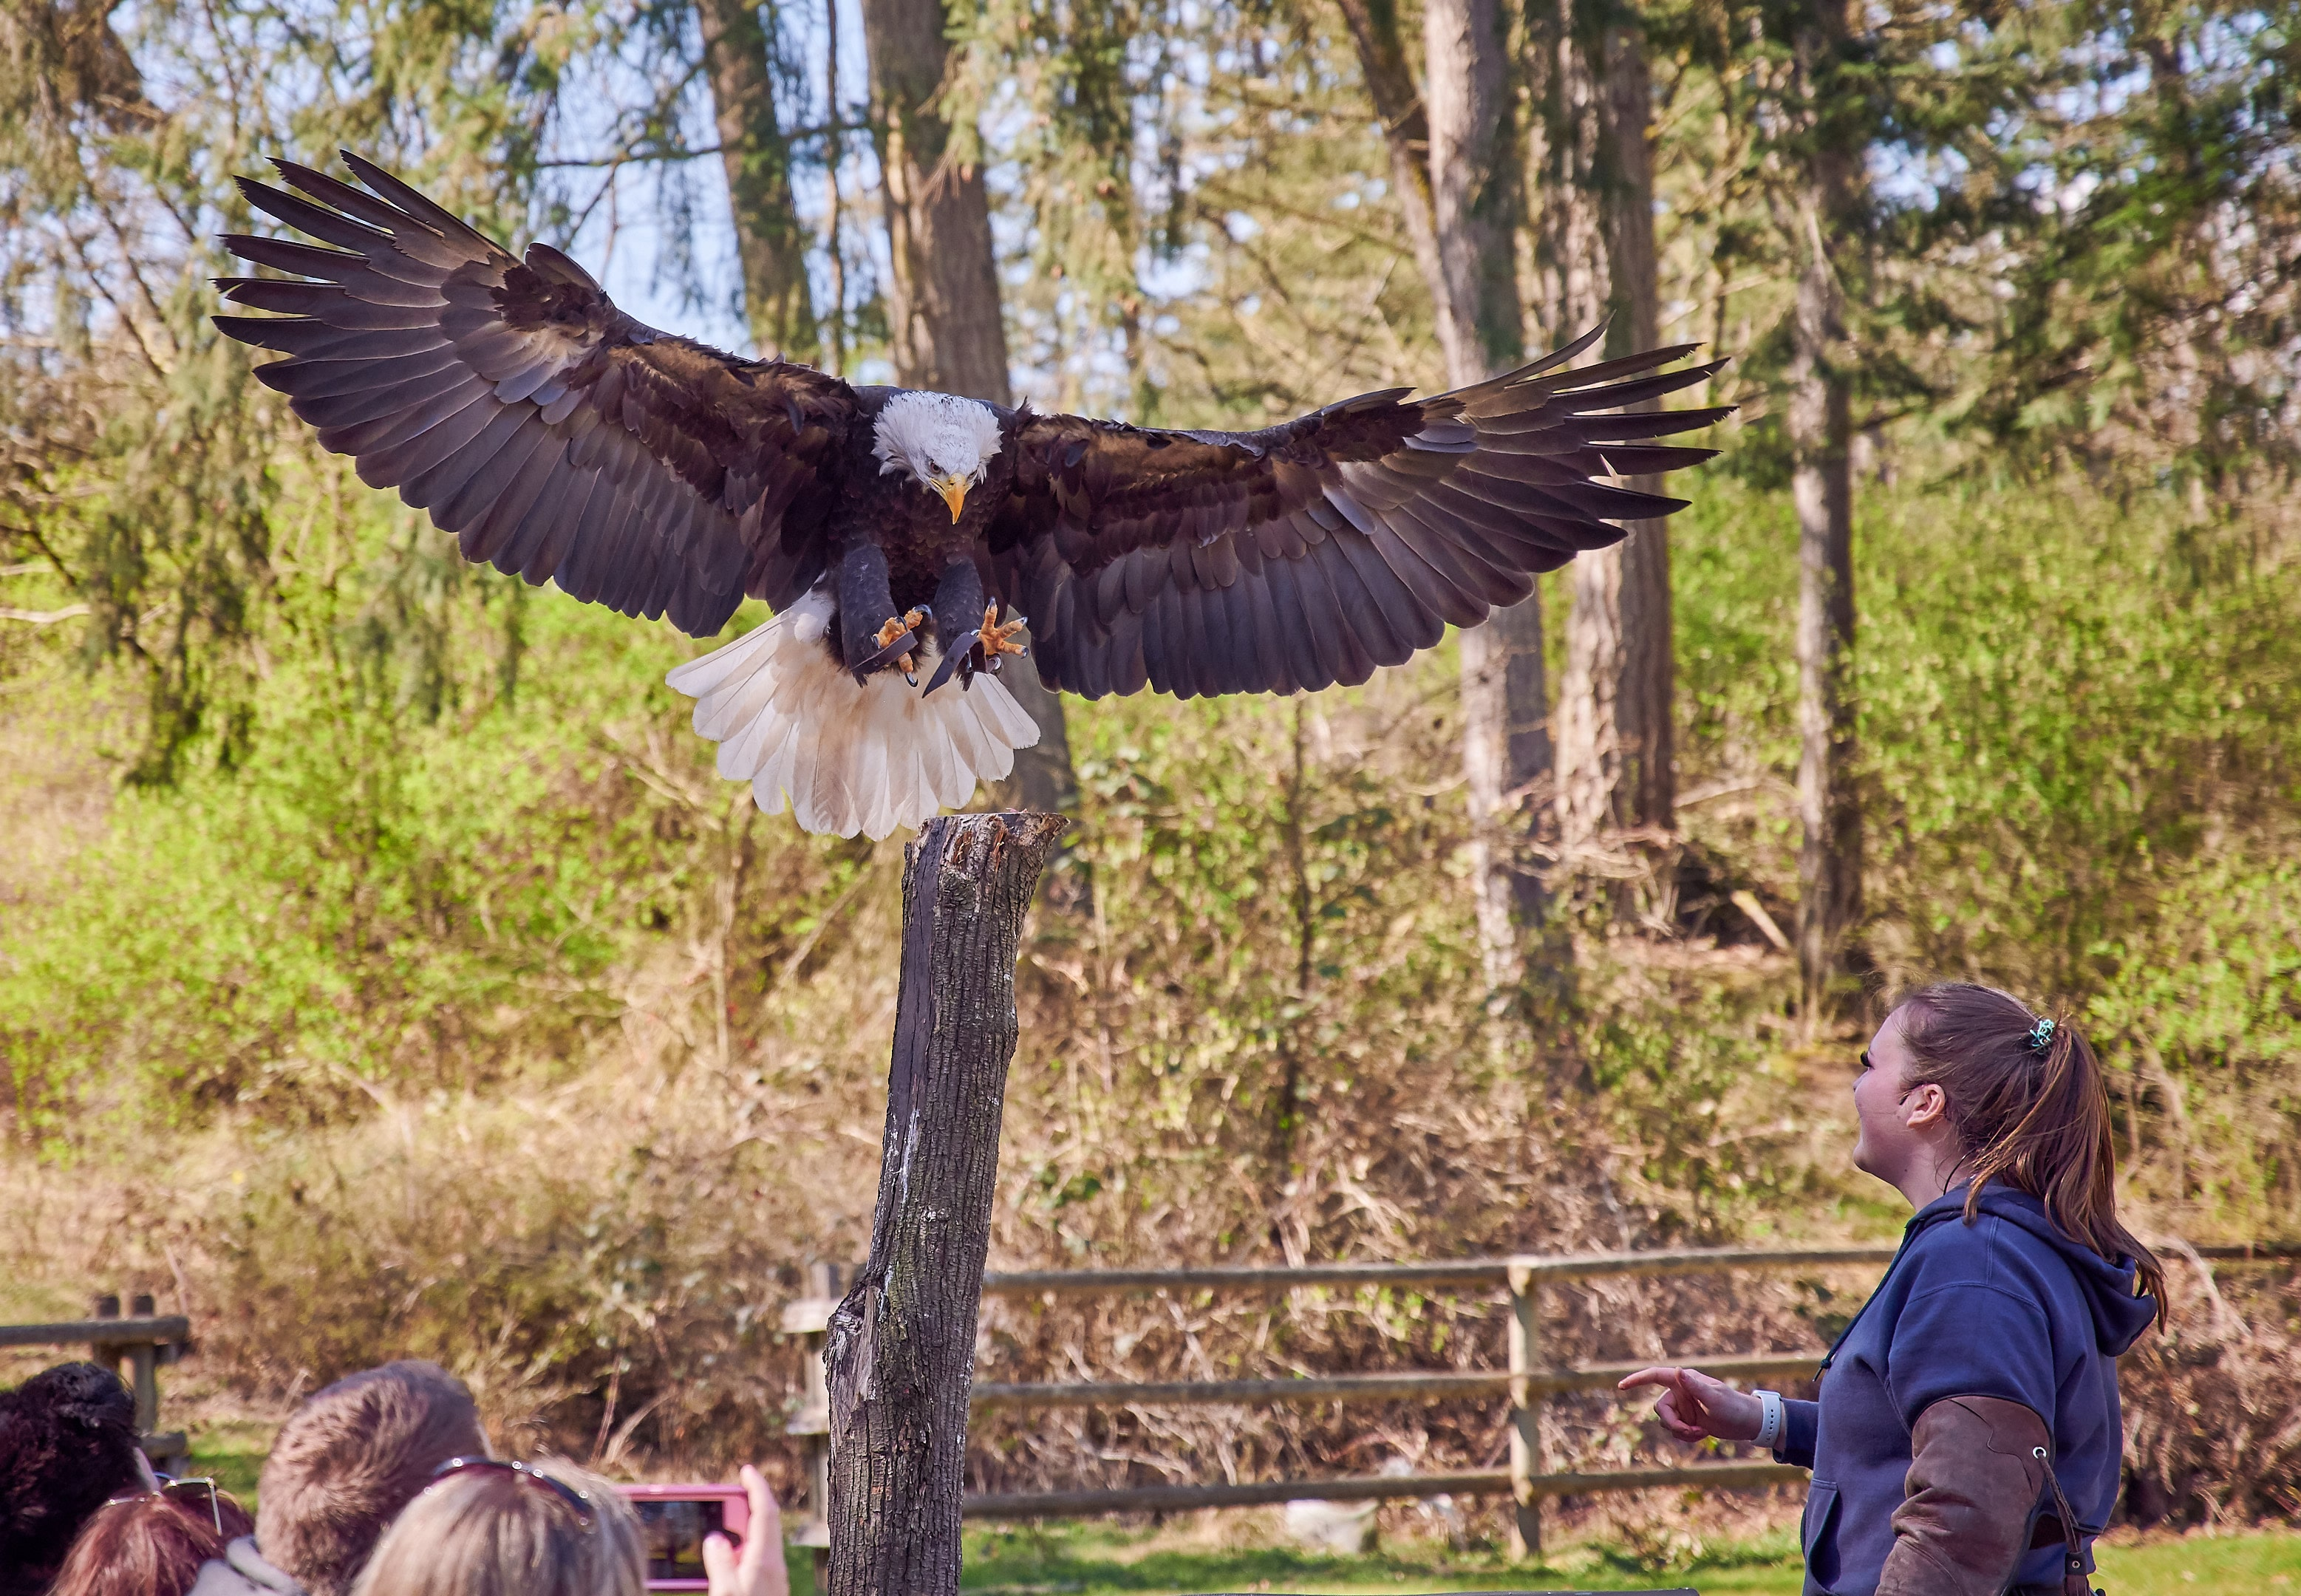 Vancouver Island Raptors – Nikon Z7 Nikkor 24-70 f/4 S – Bald Eagle flying demo